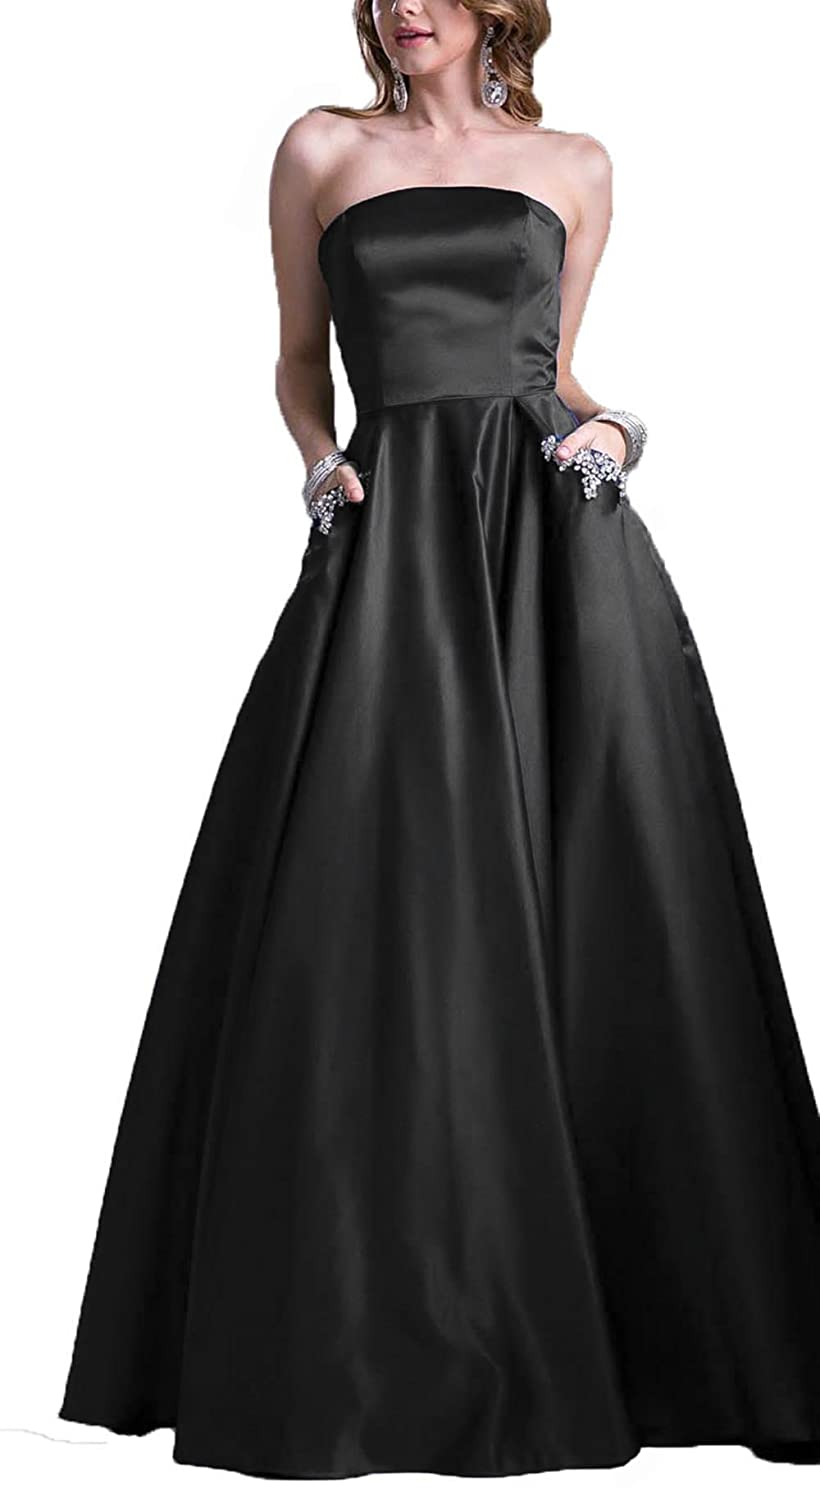 843471a2c3 AngelaLove Homecoming Dresses Short Strapless Satin Party Prom Dress with  Beaded Pocket Bridesmaid Evening Dress at Amazon Women s Clothing store